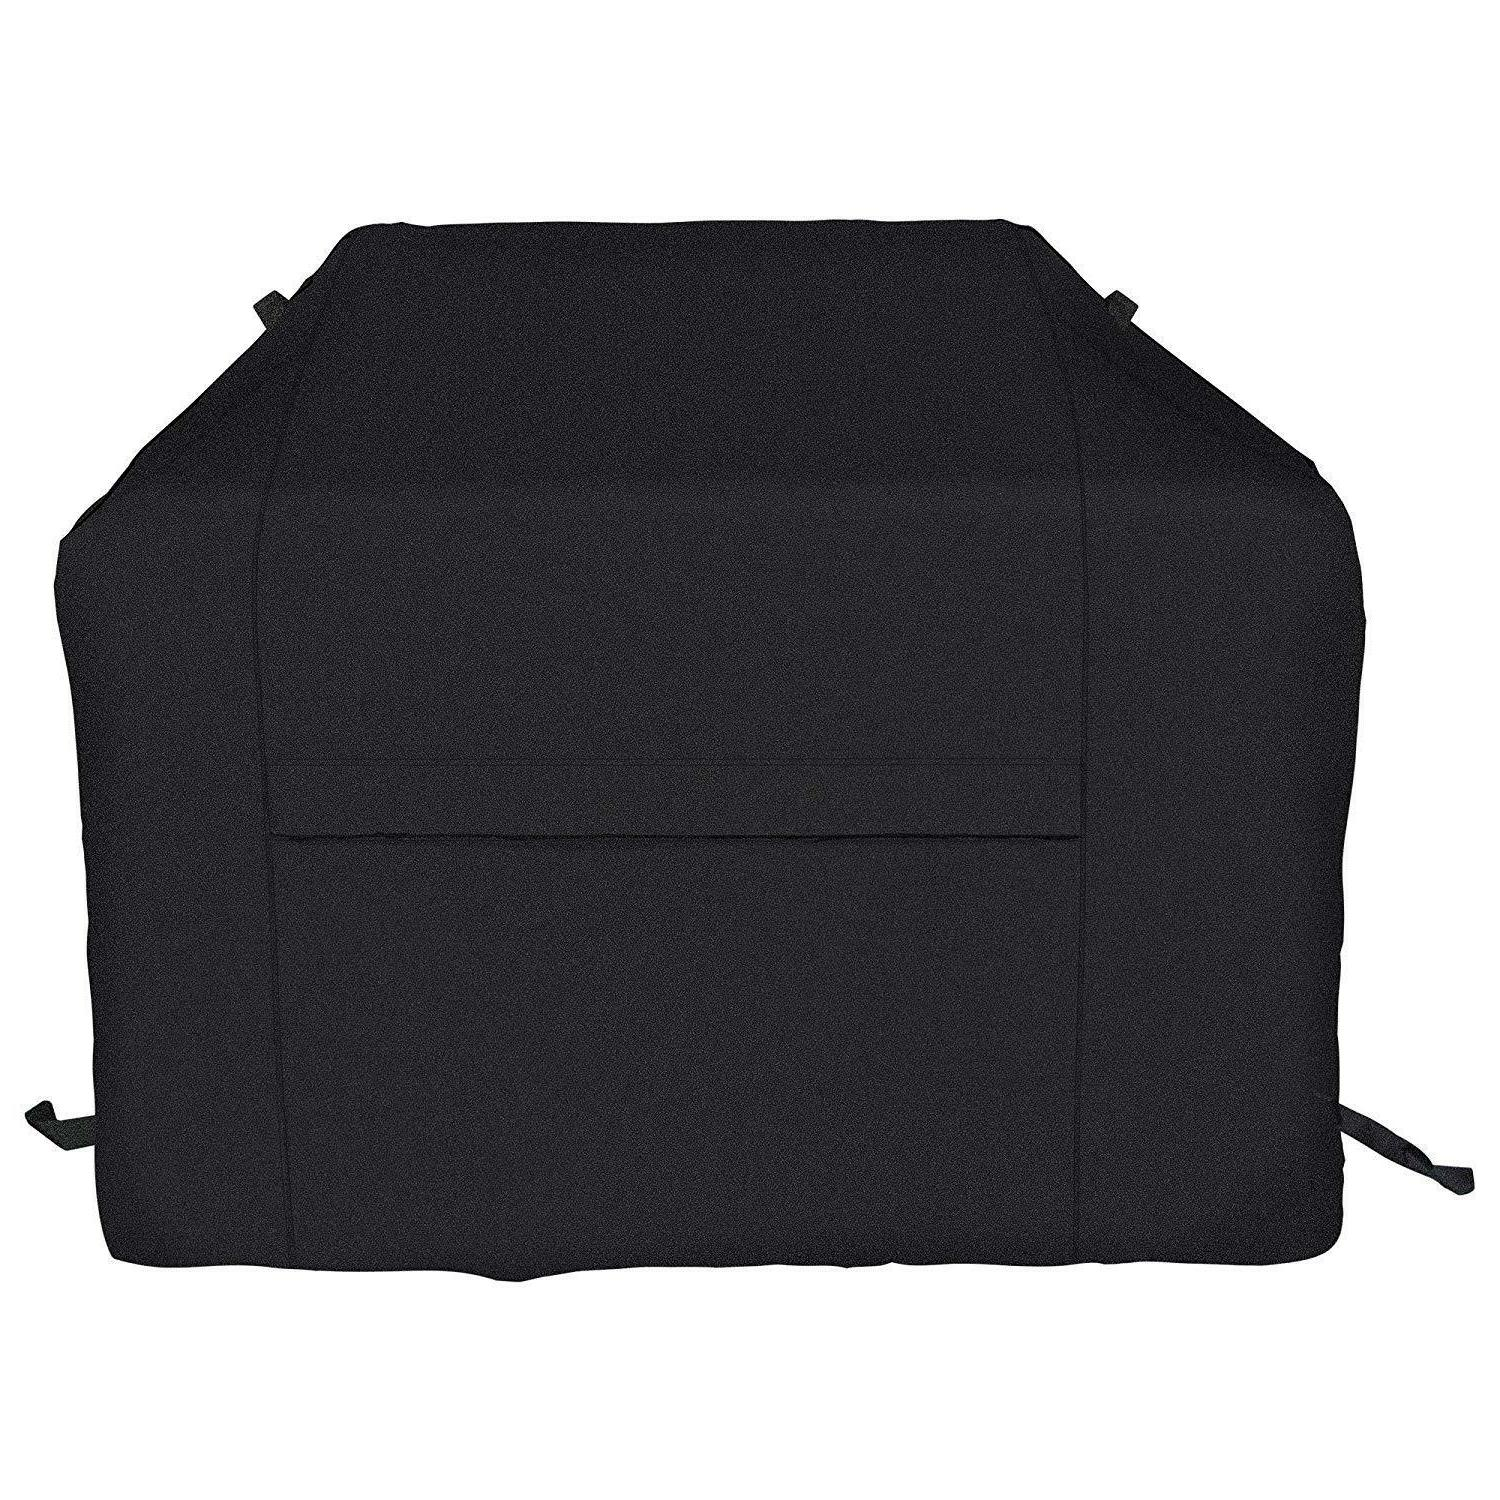 iCOVER 60 Inch Grill Cover U.V Protection Heavy Duty BBQ Bar